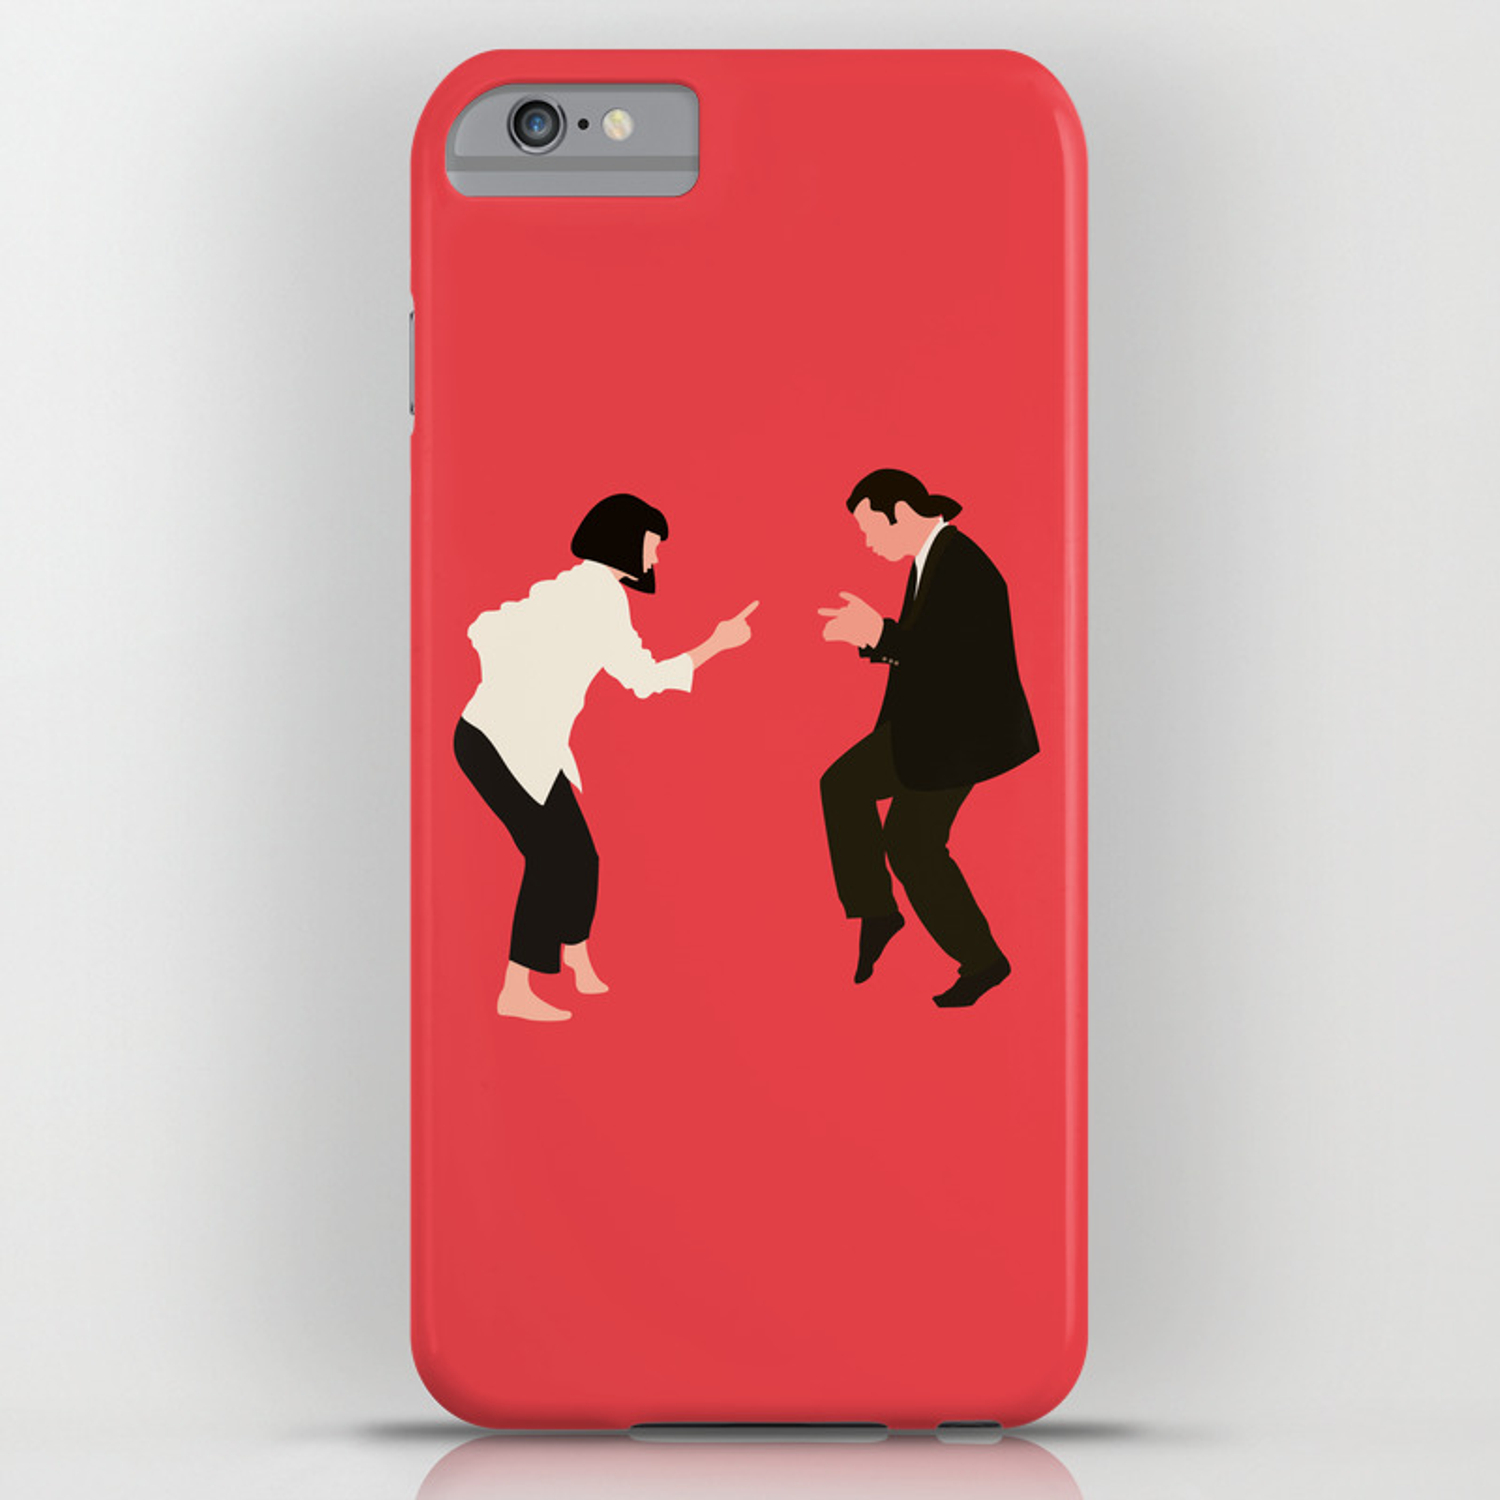 Pulp Fiction Framed iphone case